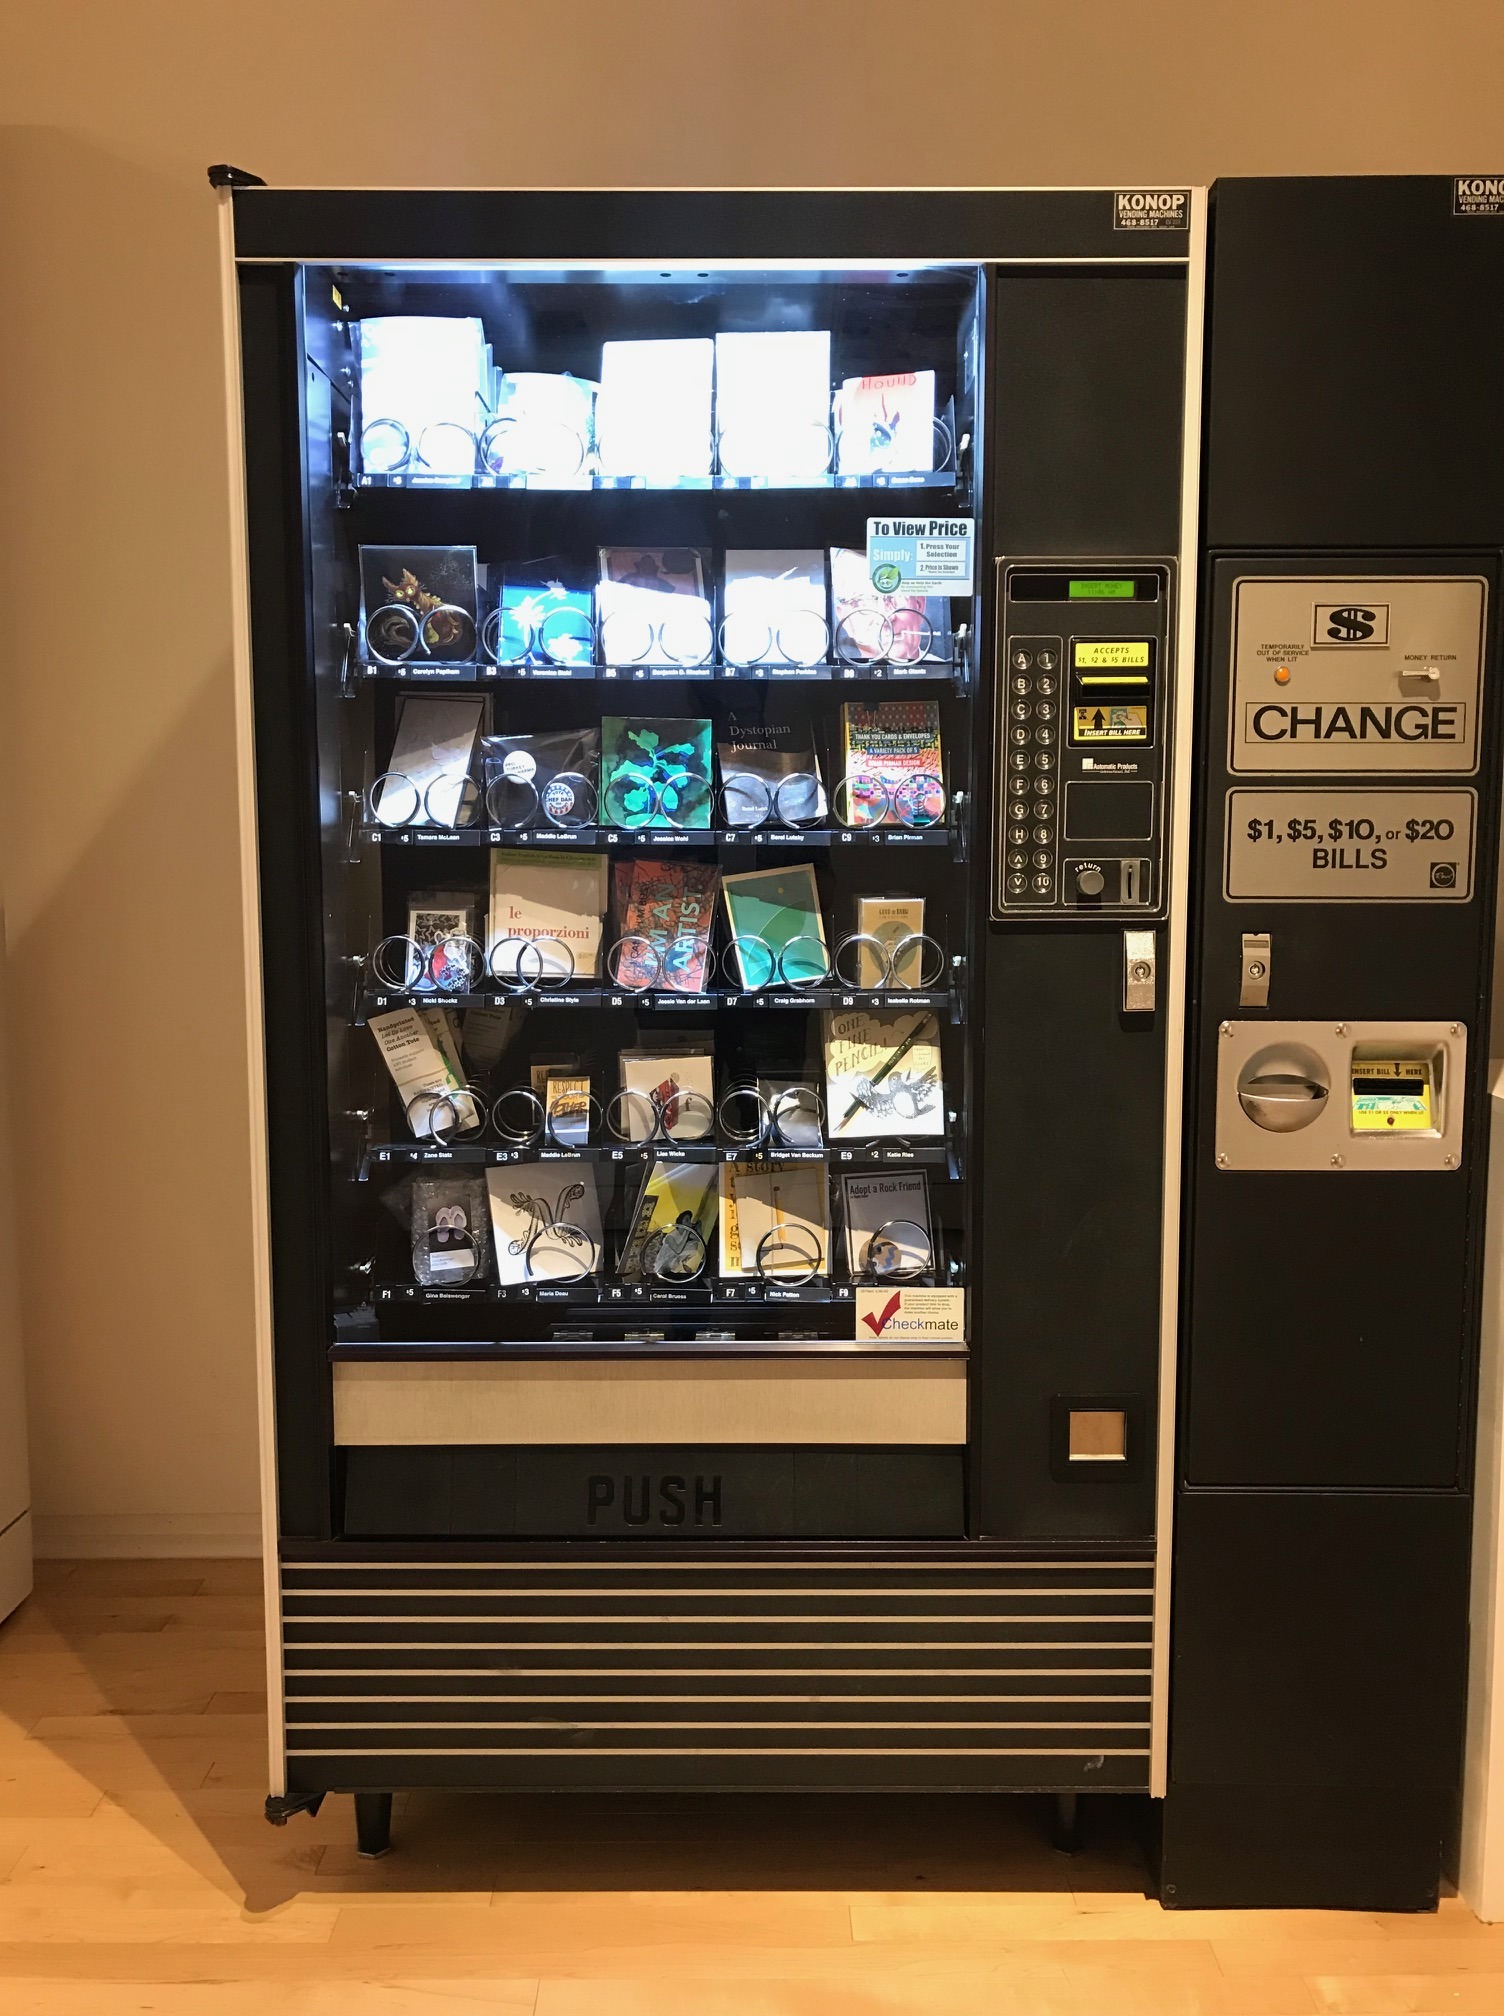 A snack vending machine full of works of art.